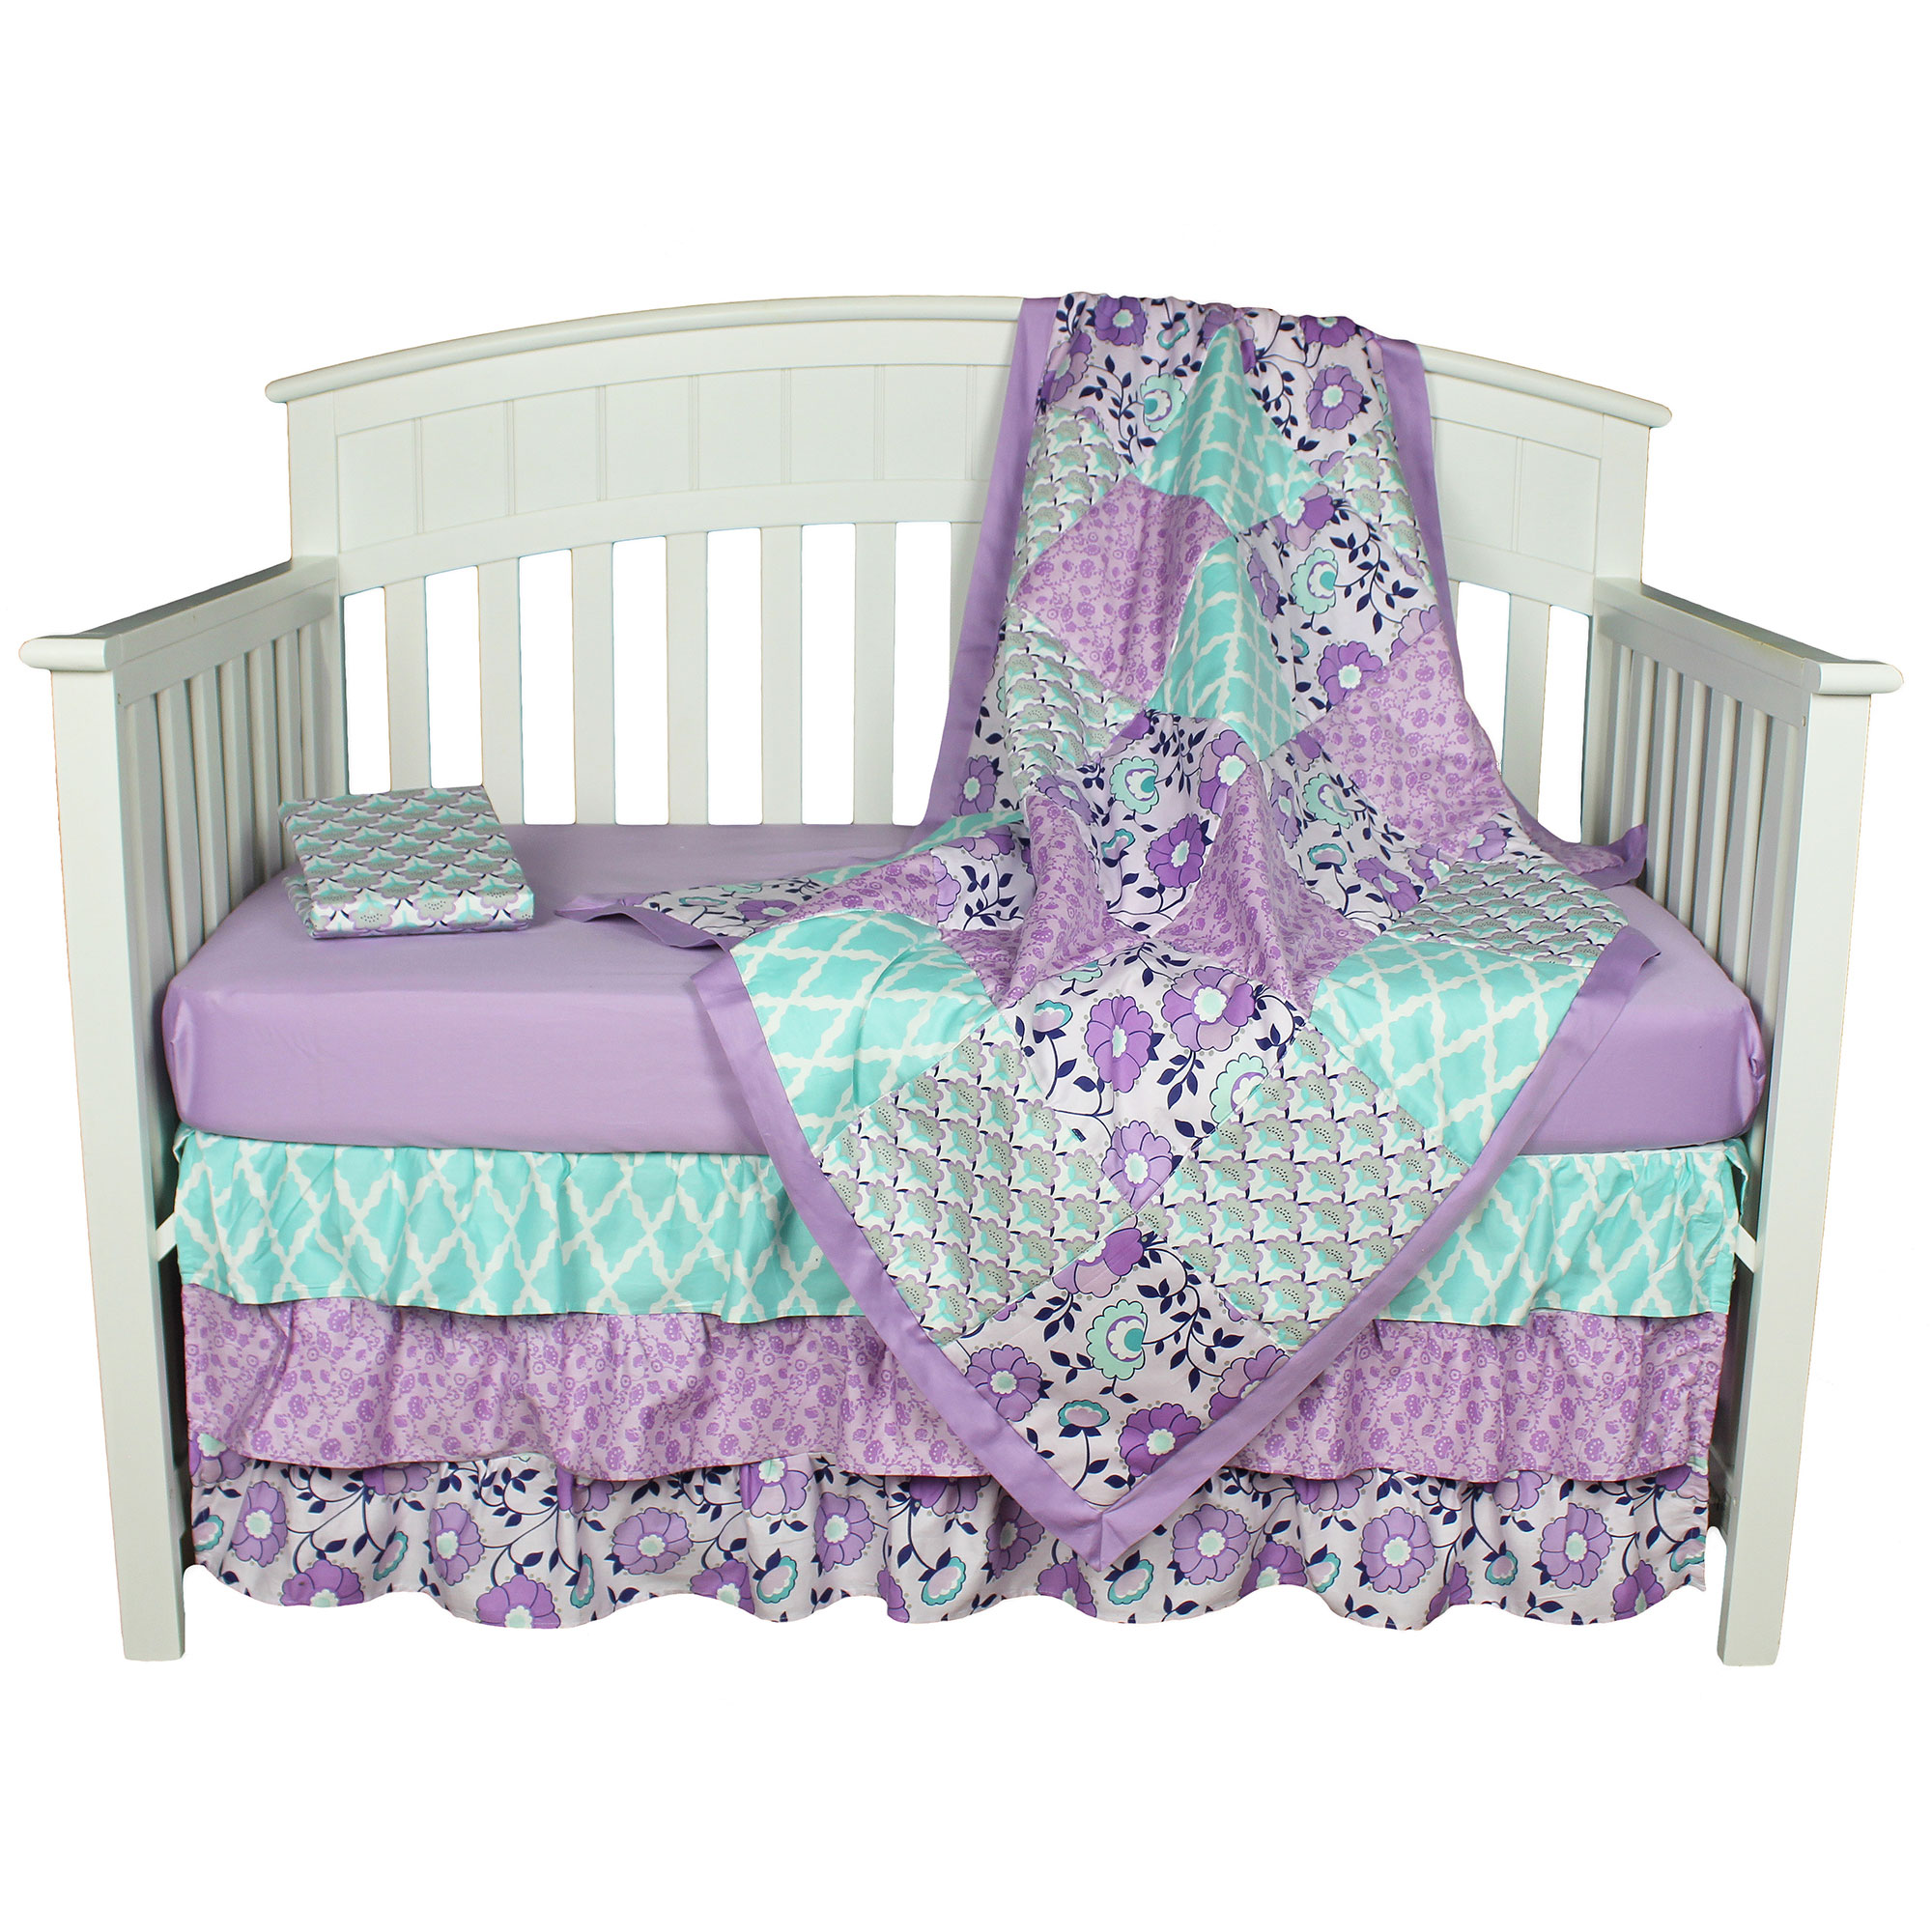 The Peanut Shell Baby Girl Crib Bedding Set   Purple Floral Design   Zoe 4  Piece Set Includes Coverlet, Dust Ruffle, And Two Fitted Sheets